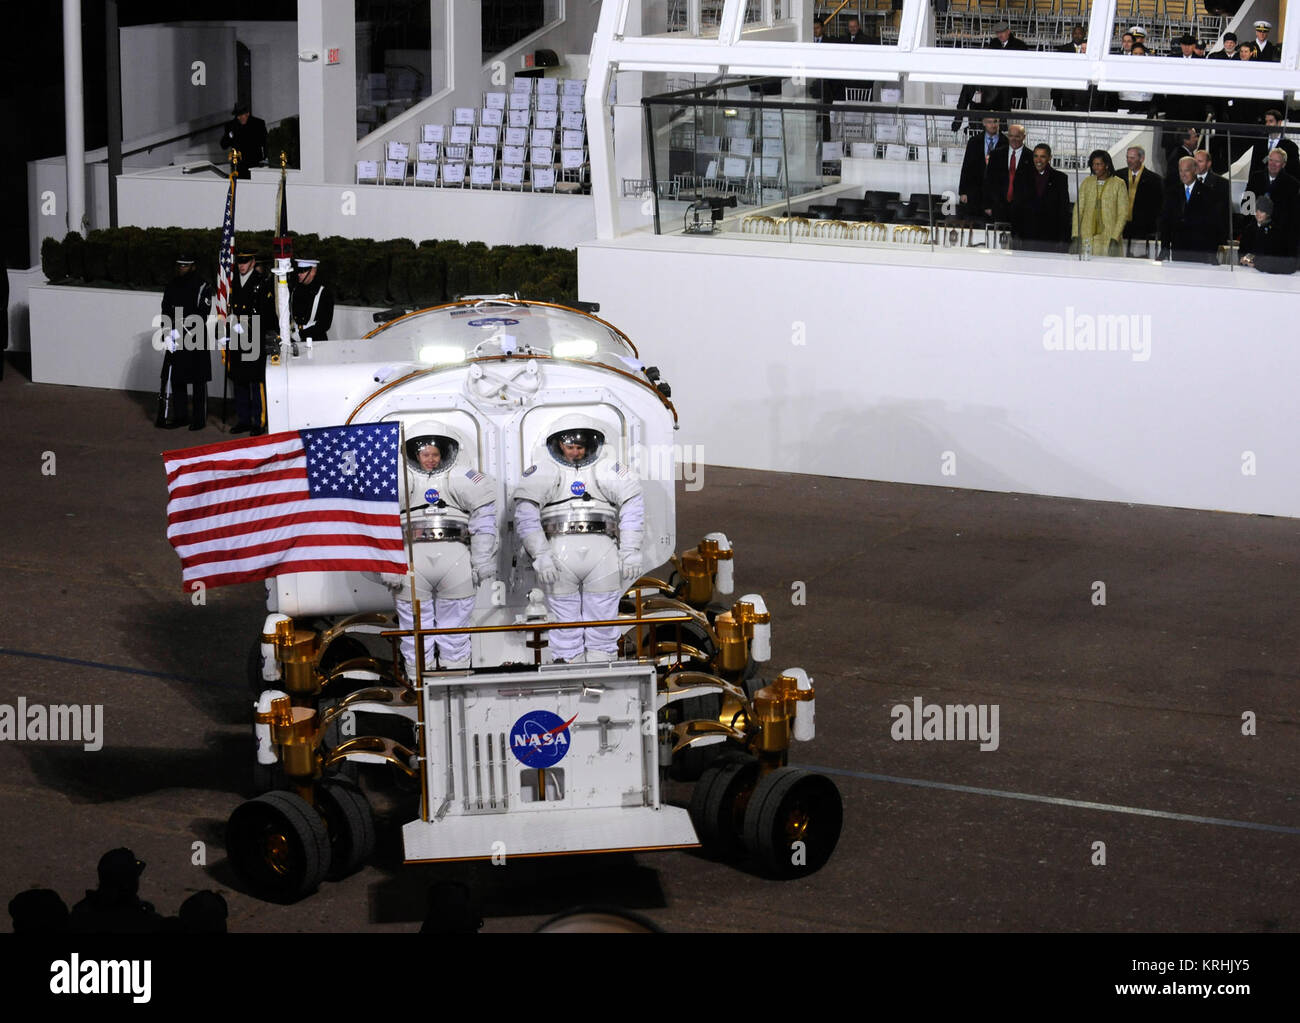 Photo Credit: (NASA/Bill Ingalls) Lunar Electric Rover at 2009 Presidential inauguration parade 2 - Stock Image